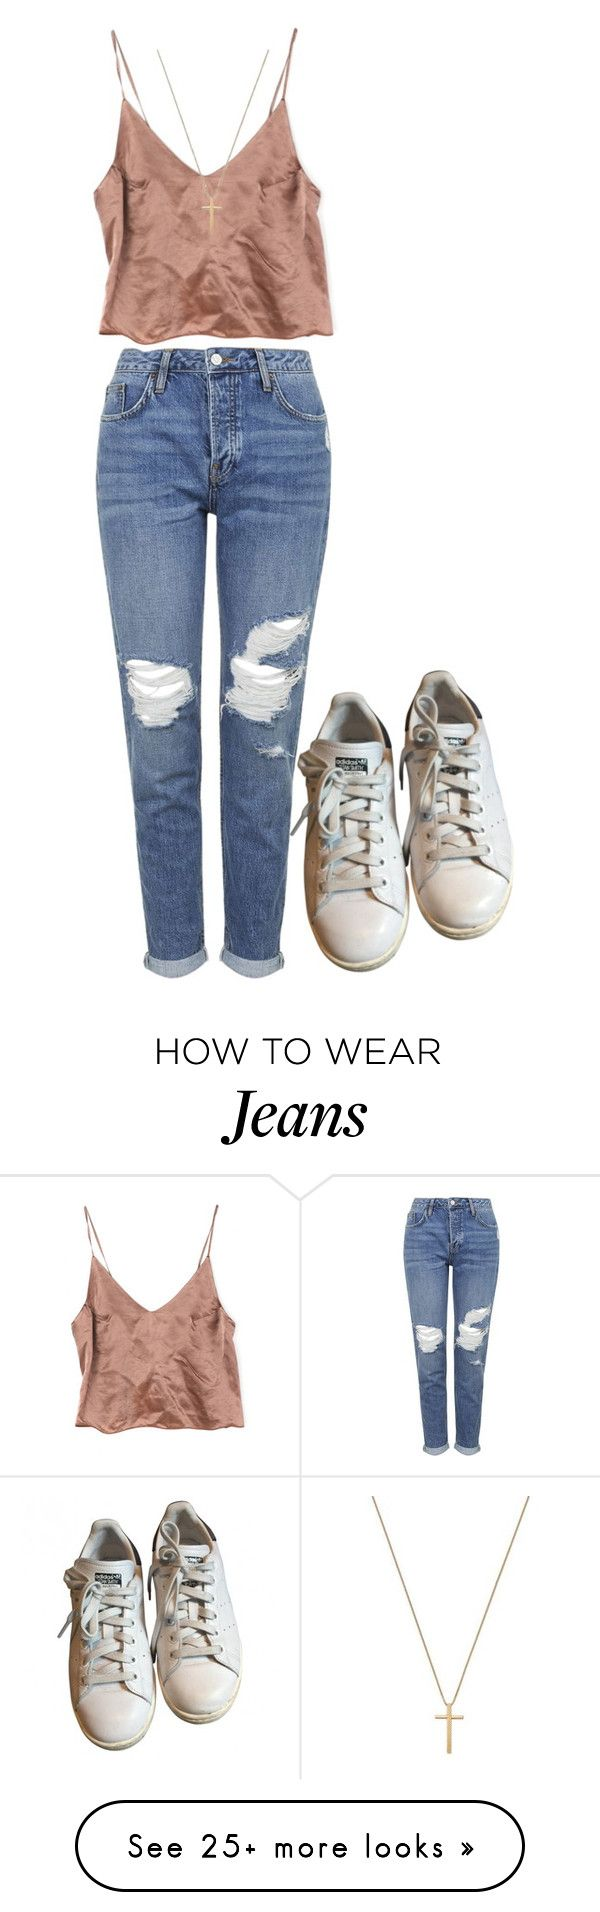 """Untitled #551"" by kristinacason on Polyvore featuring Topshop, adidas and Gucci"